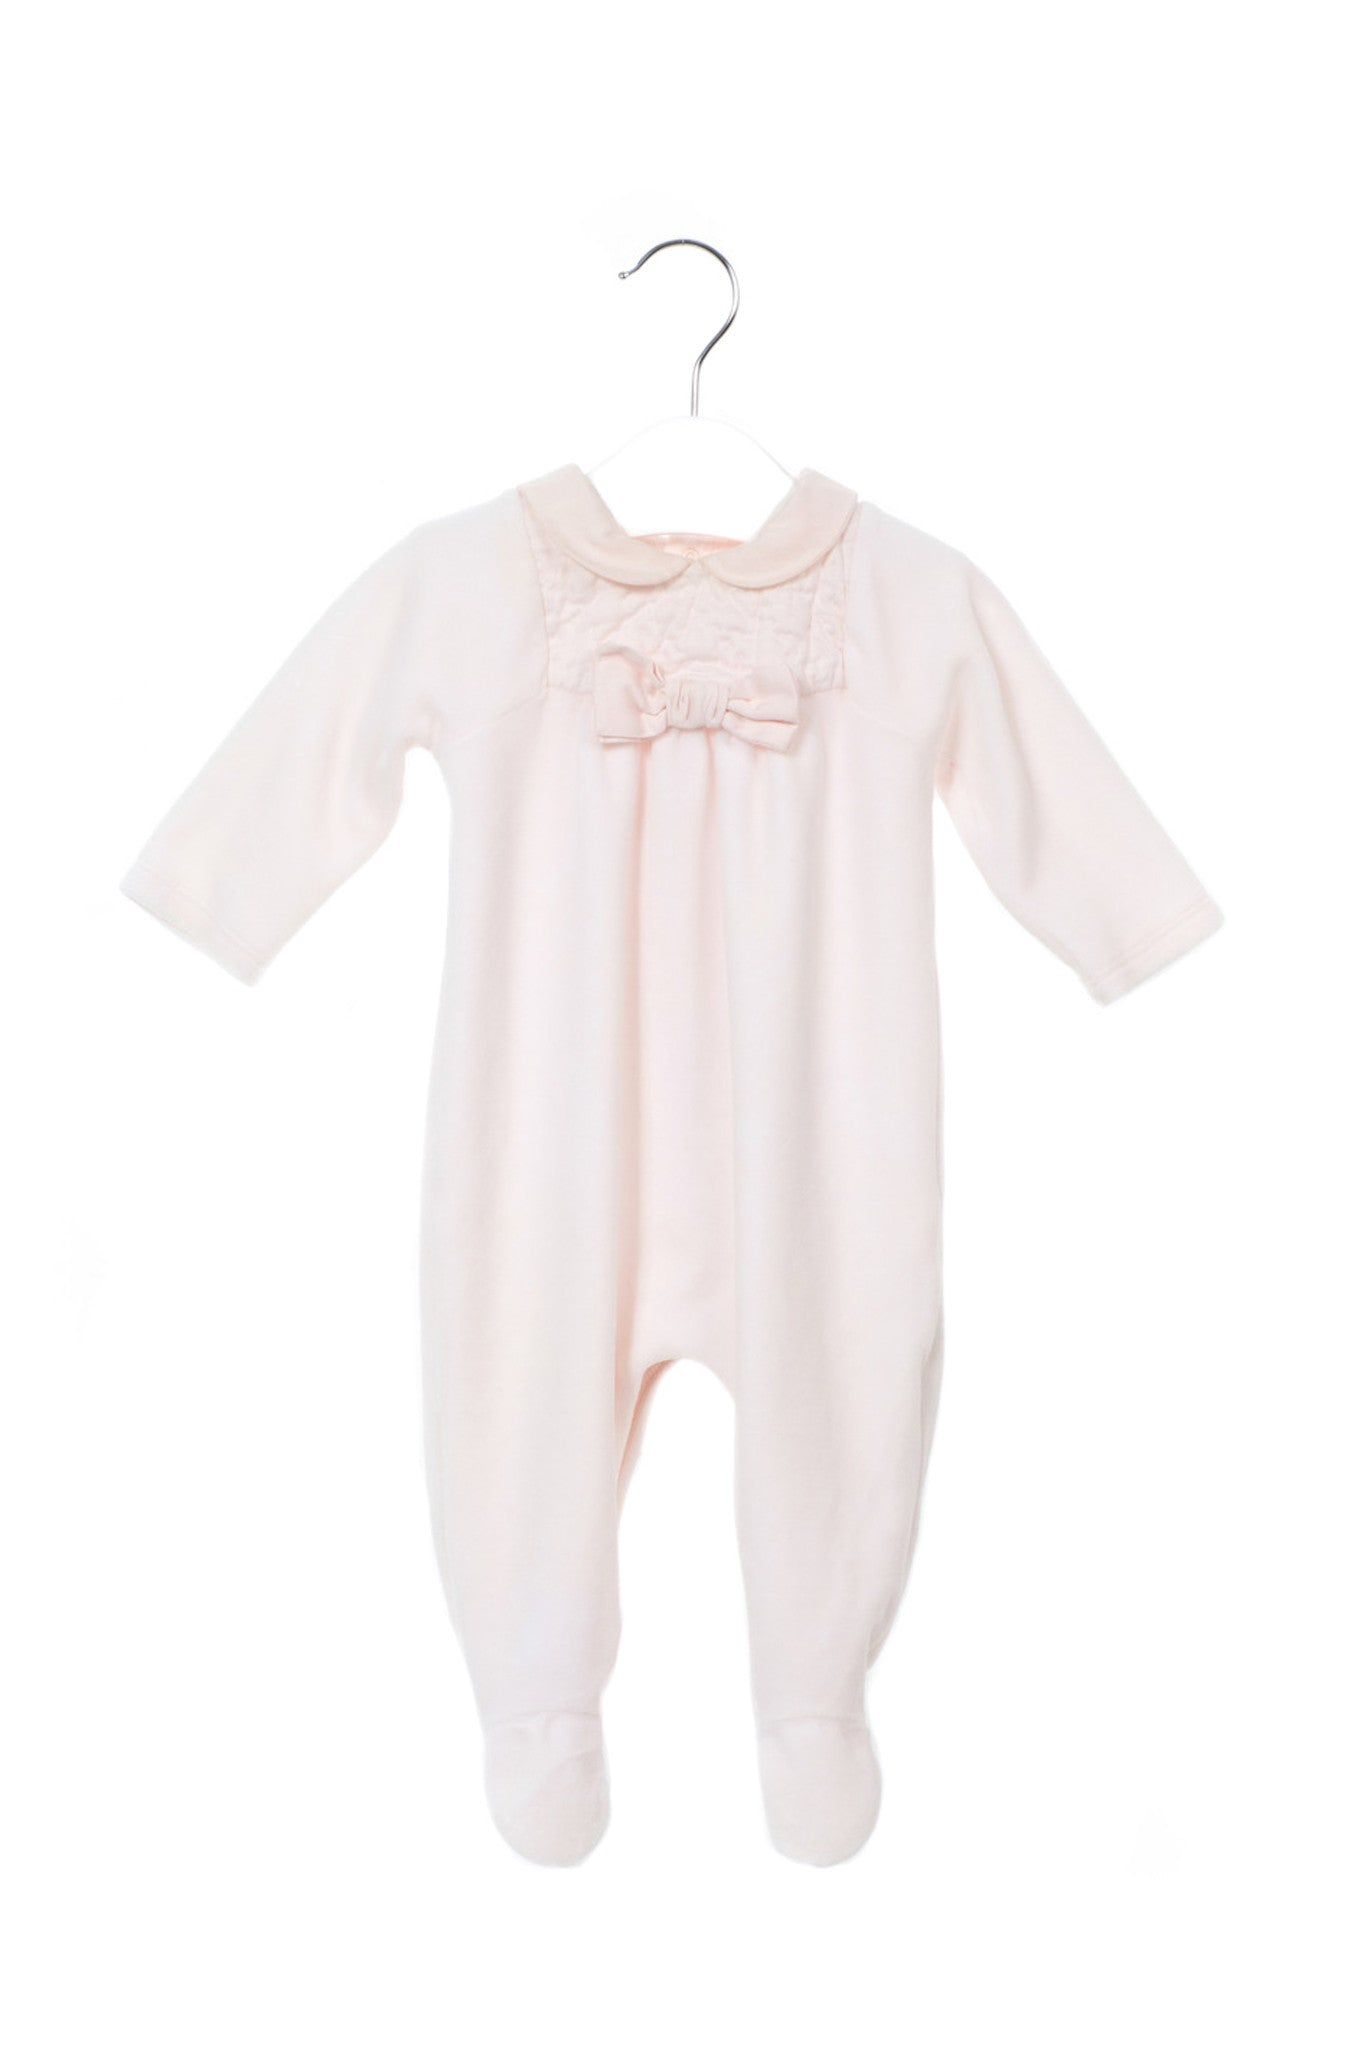 10001026 Chloe Baby~Jumpsuit 3-6M at Retykle